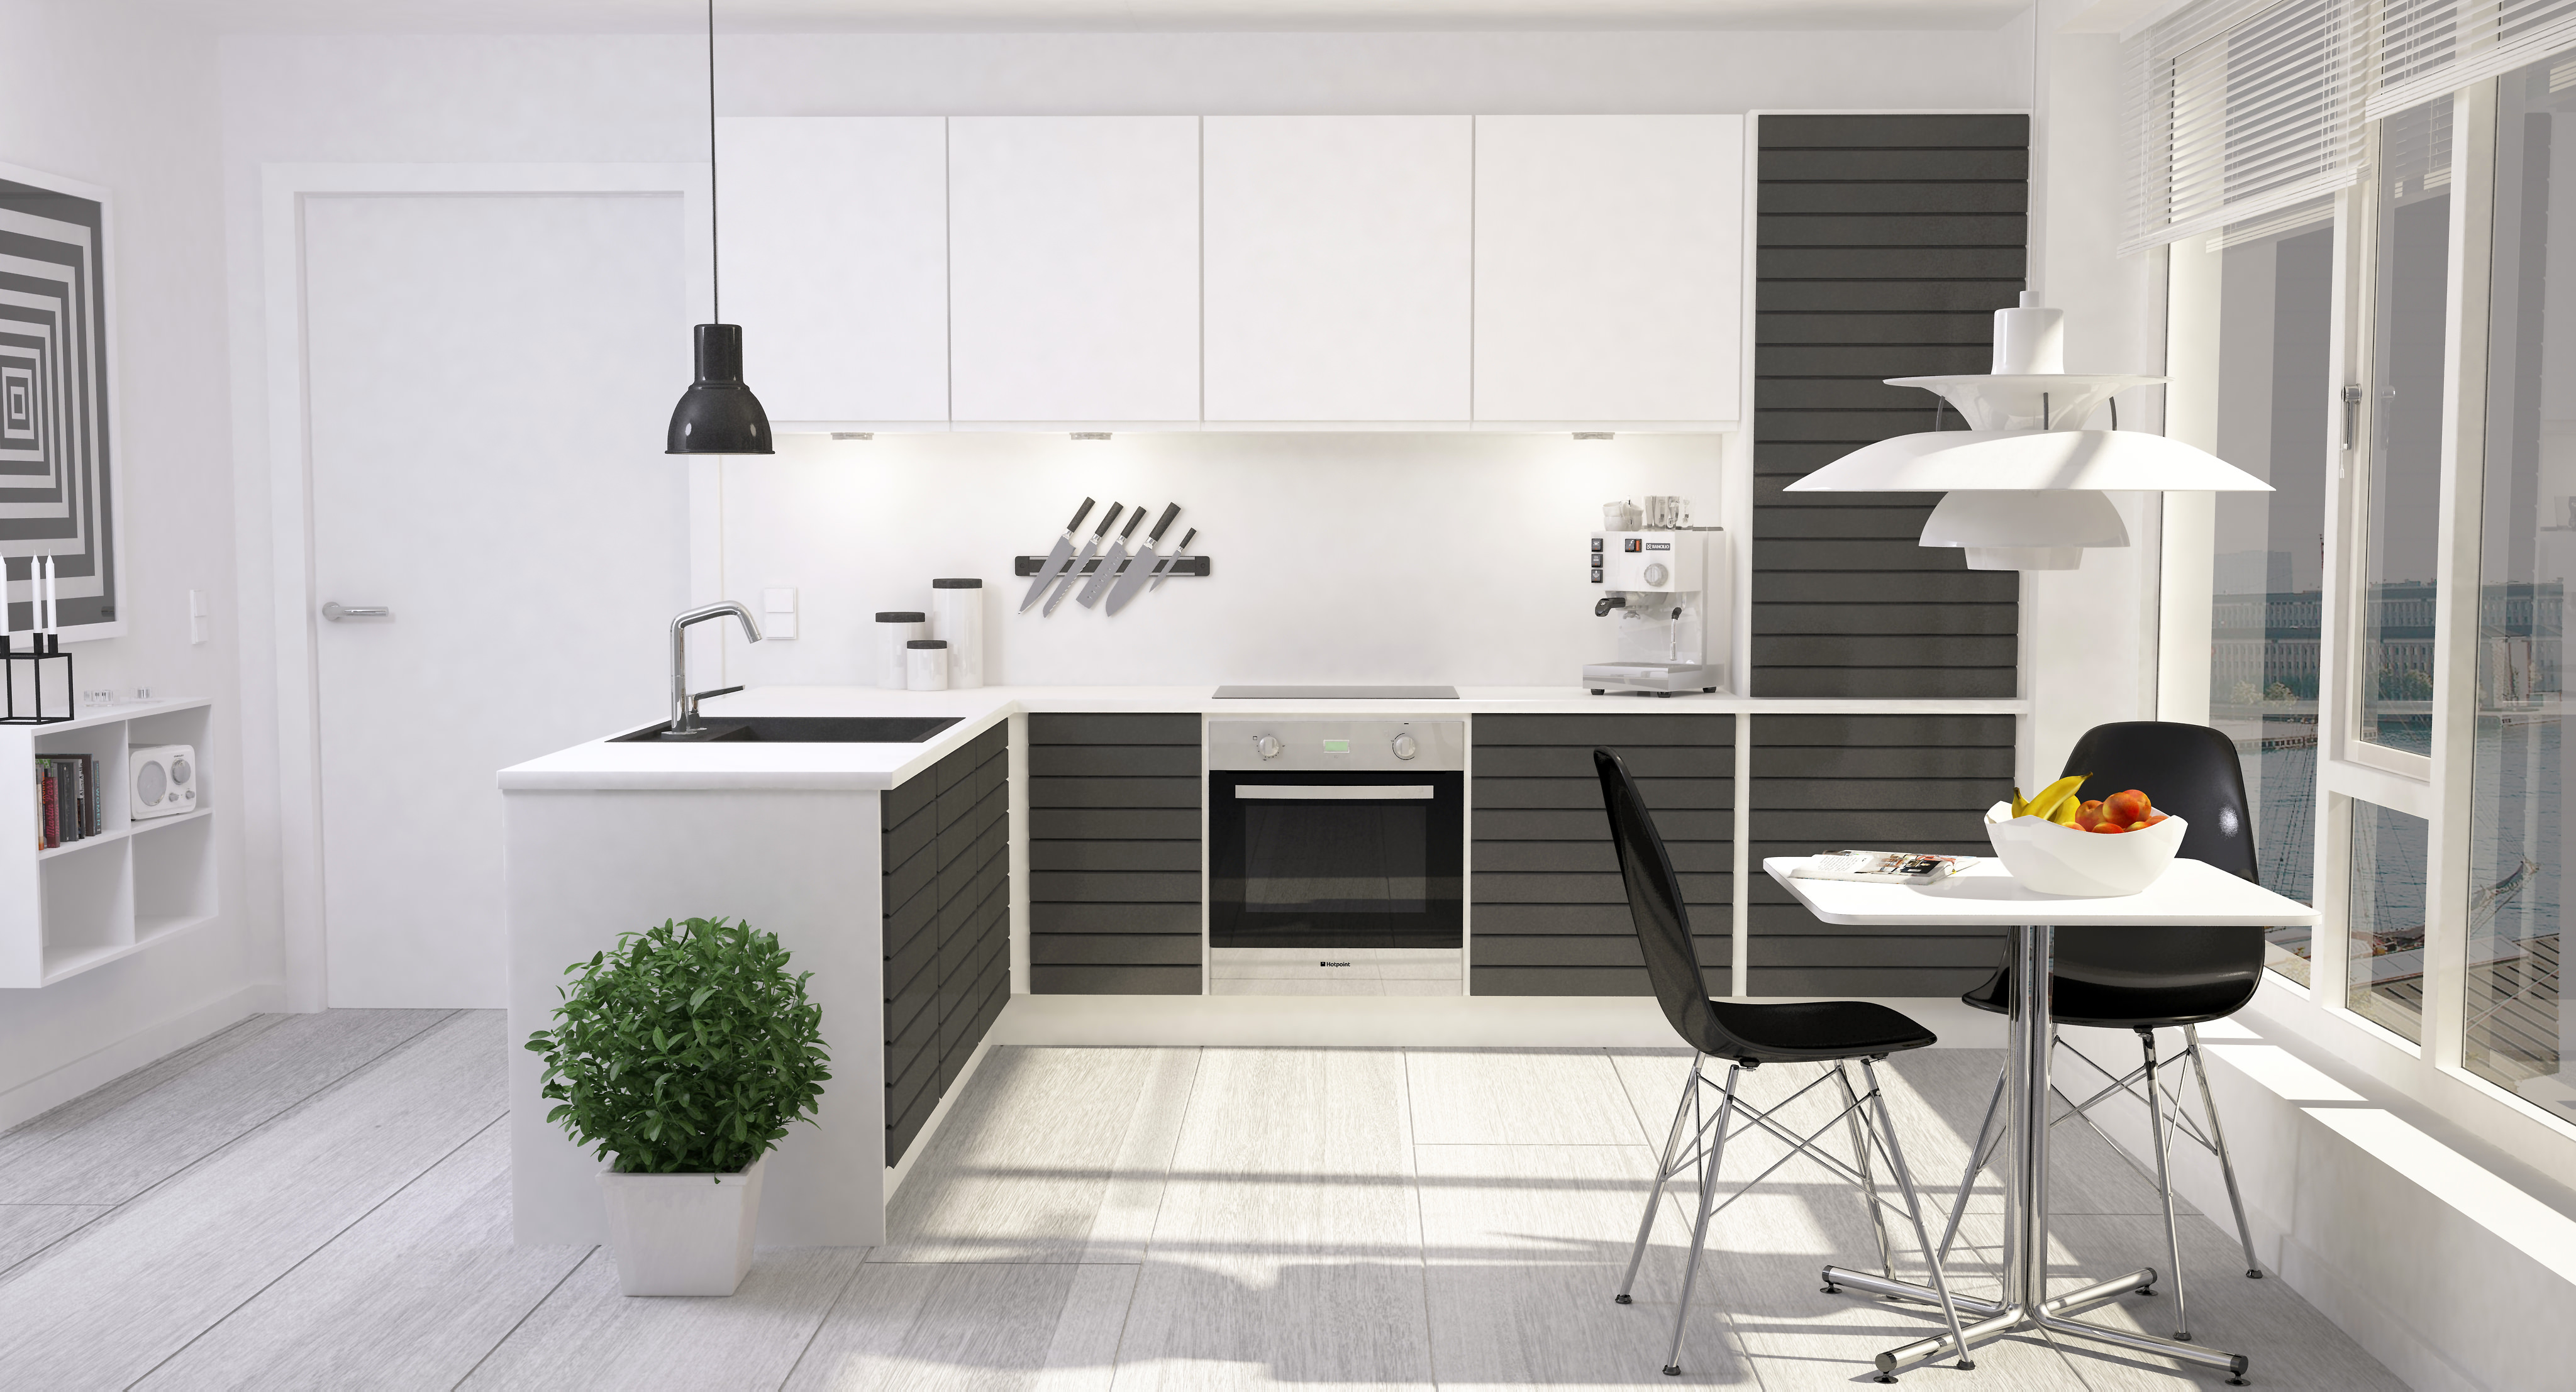 Modern Kitchen Interior 001 3d Model Max Obj Fbx Dxf Dwg 2